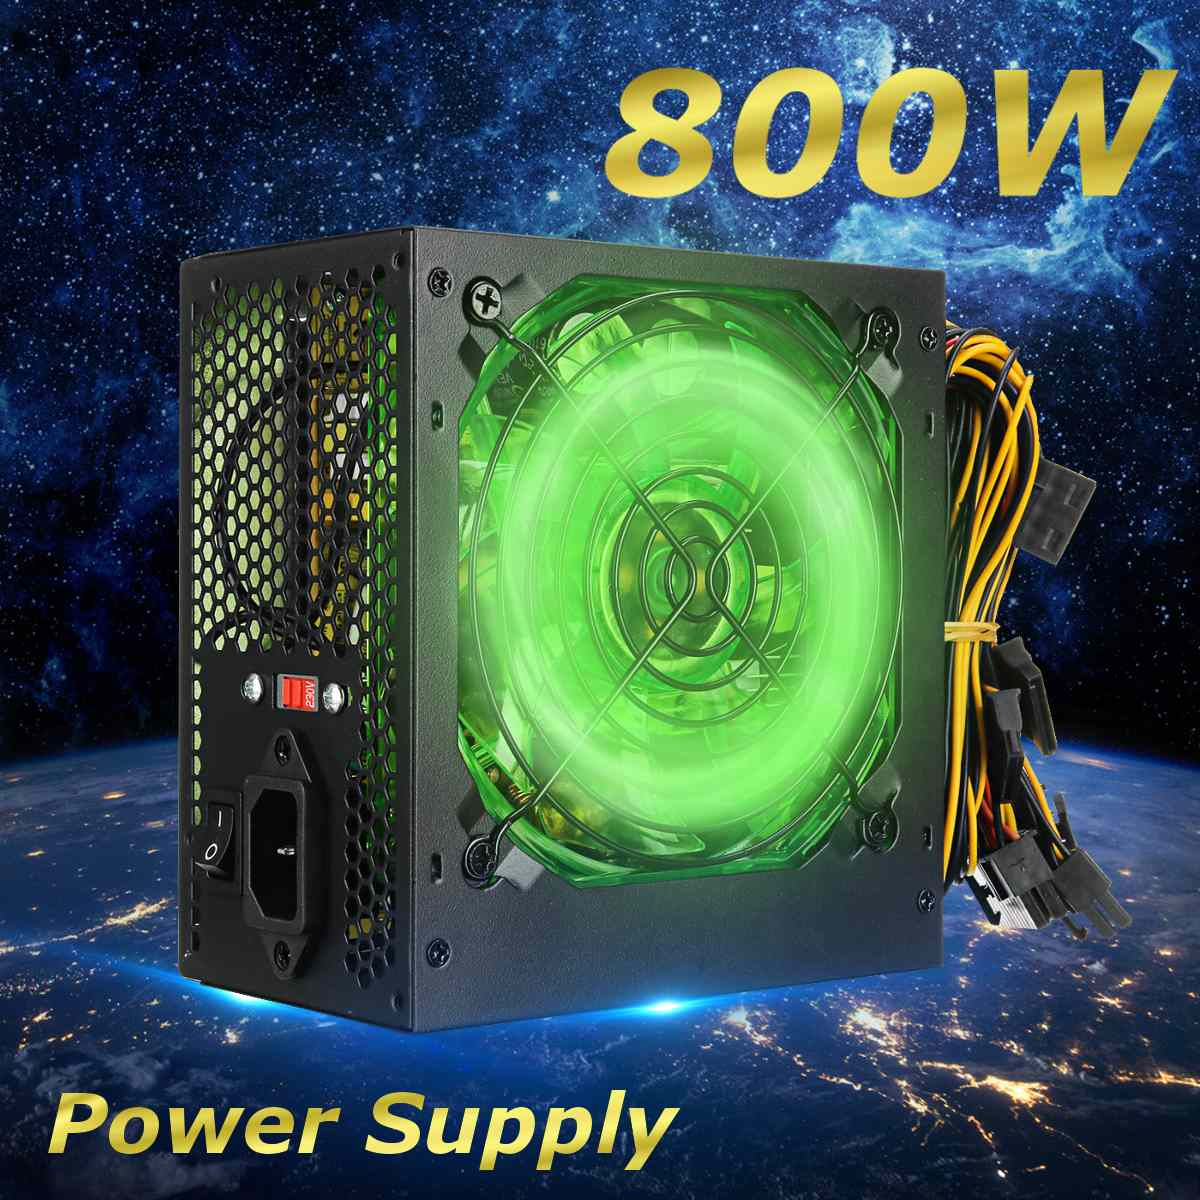 800W 110~220V PC Power Supply 12cm LED S ilent Fan with Intelligent temperature control Intel AMD ATX 12V for Desktop computer800W 110~220V PC Power Supply 12cm LED S ilent Fan with Intelligent temperature control Intel AMD ATX 12V for Desktop computer